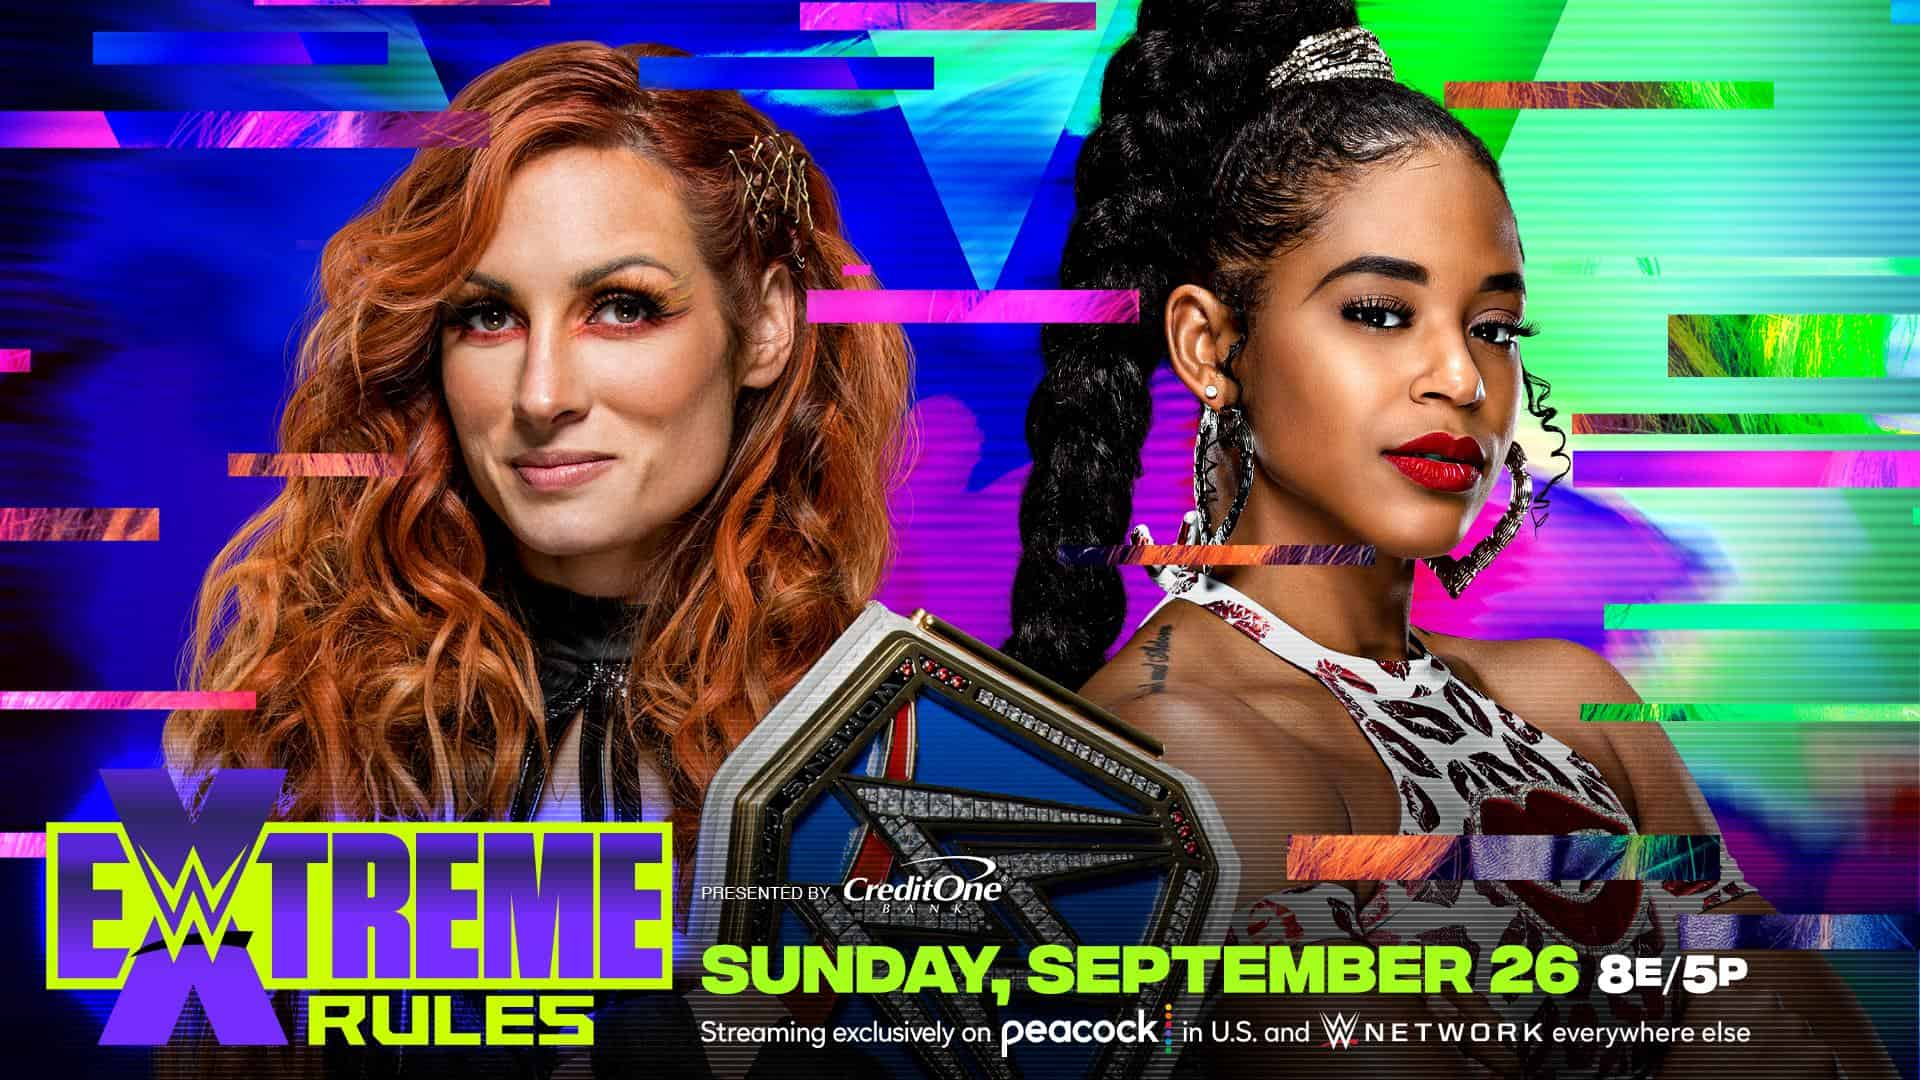 Becky Lynch vs Bianca Belair at Extreme Rules